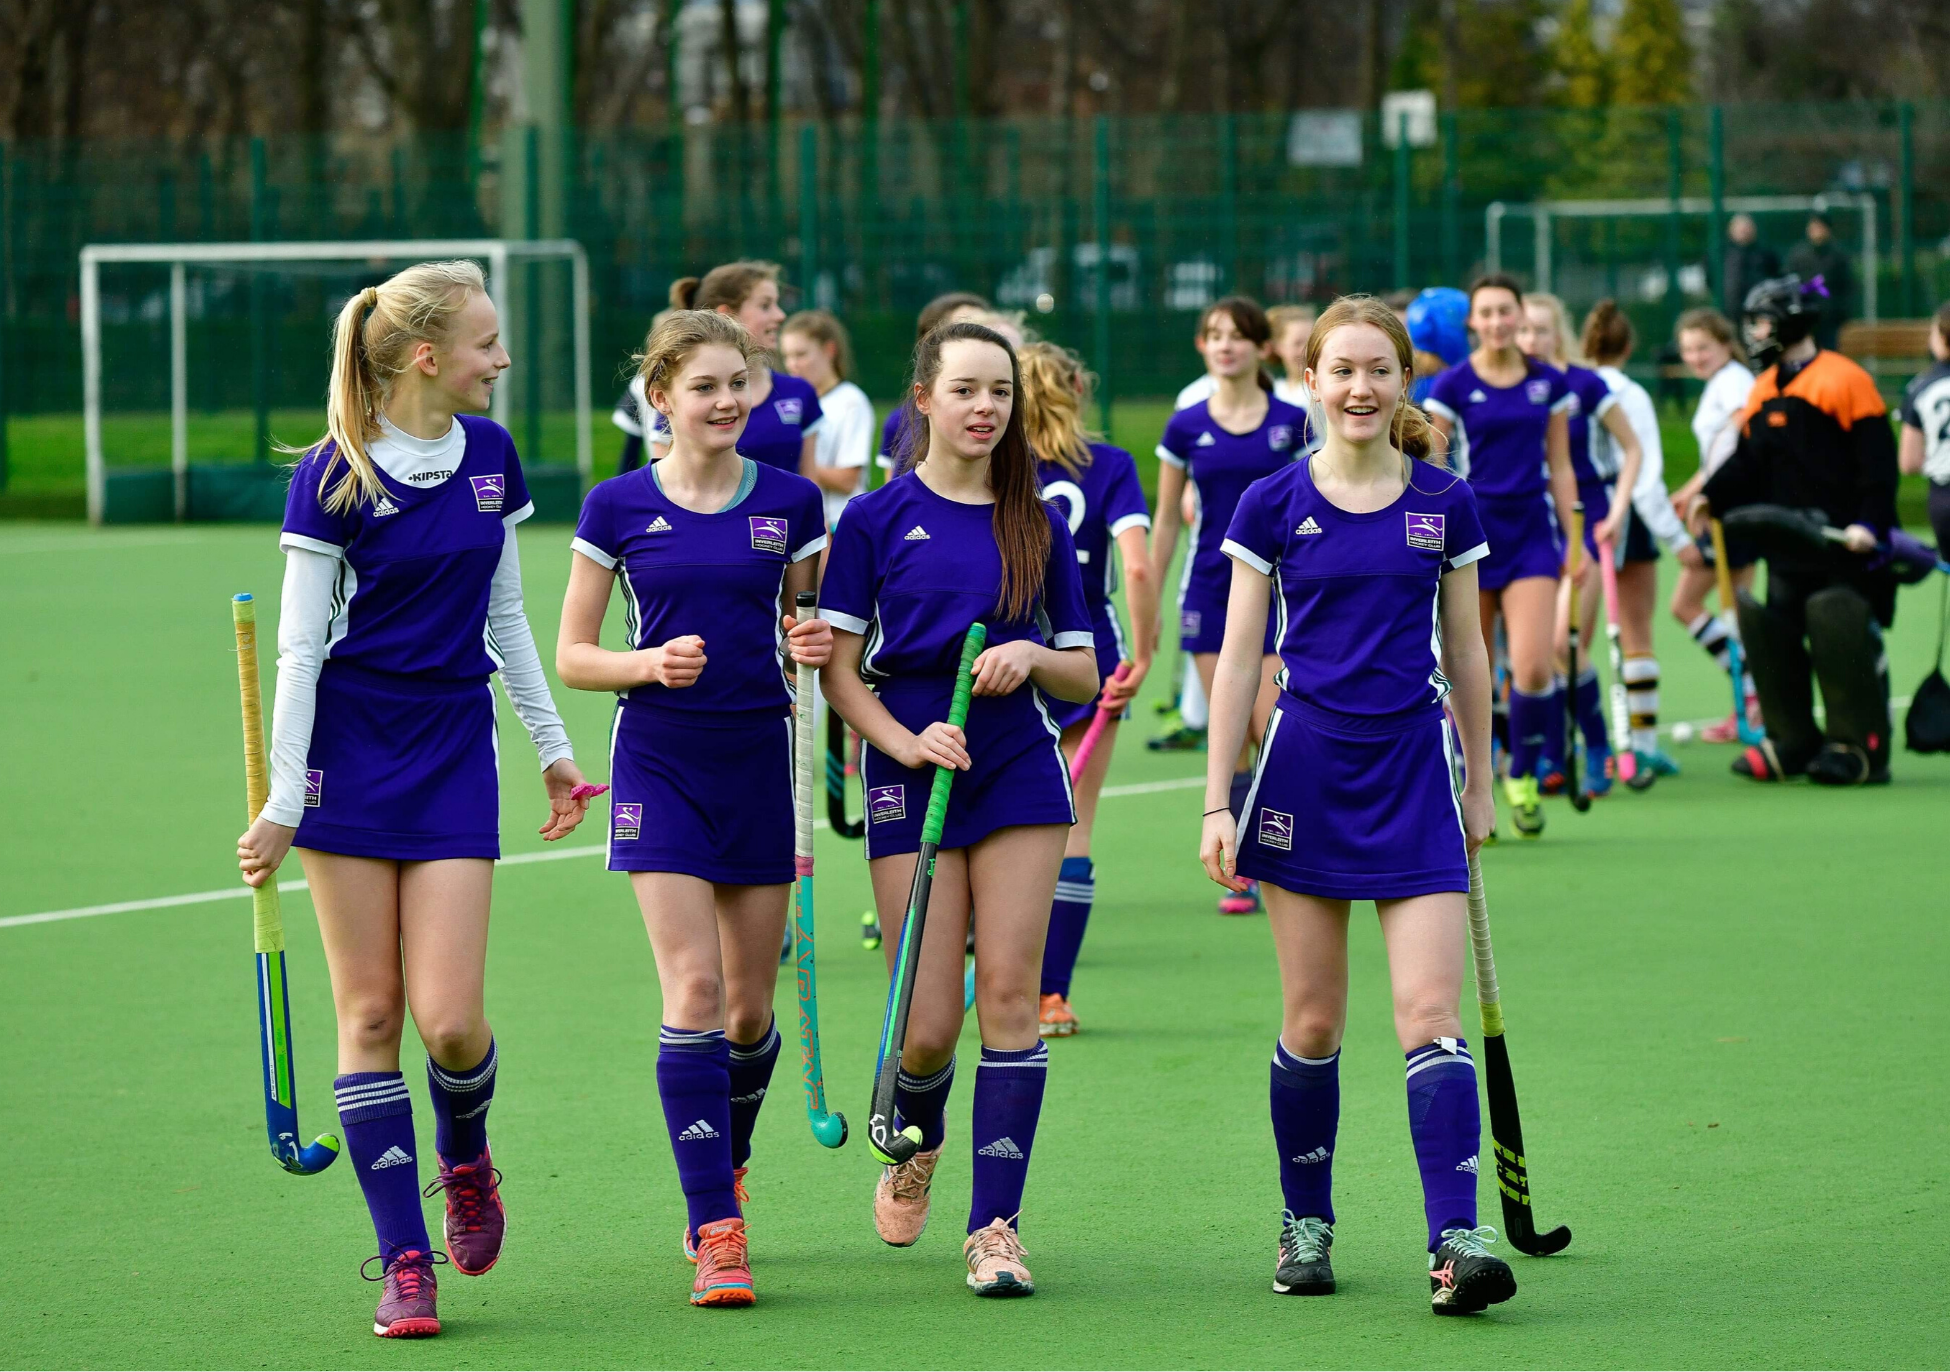 Inverleith Hockey Club